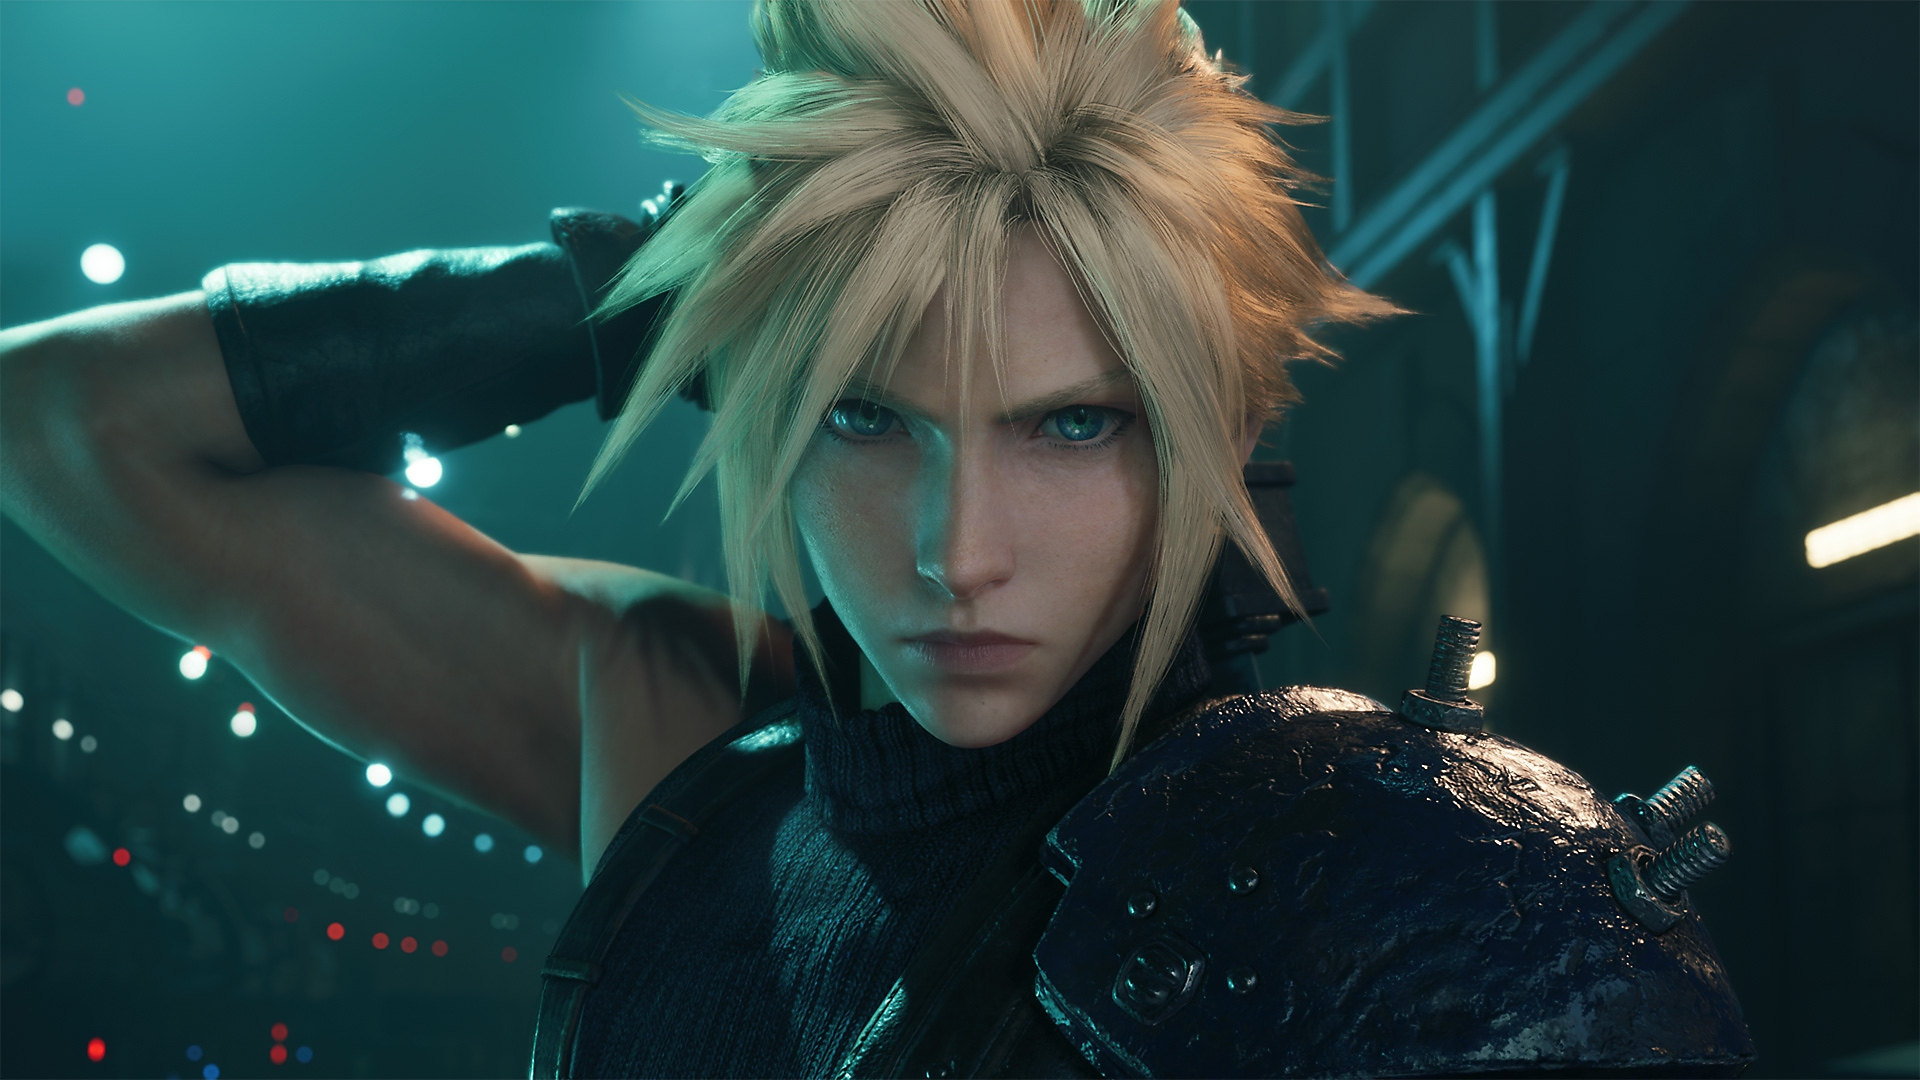 Final Fantasy VII Remake Intergrade - Capture d'écran des éléments principaux